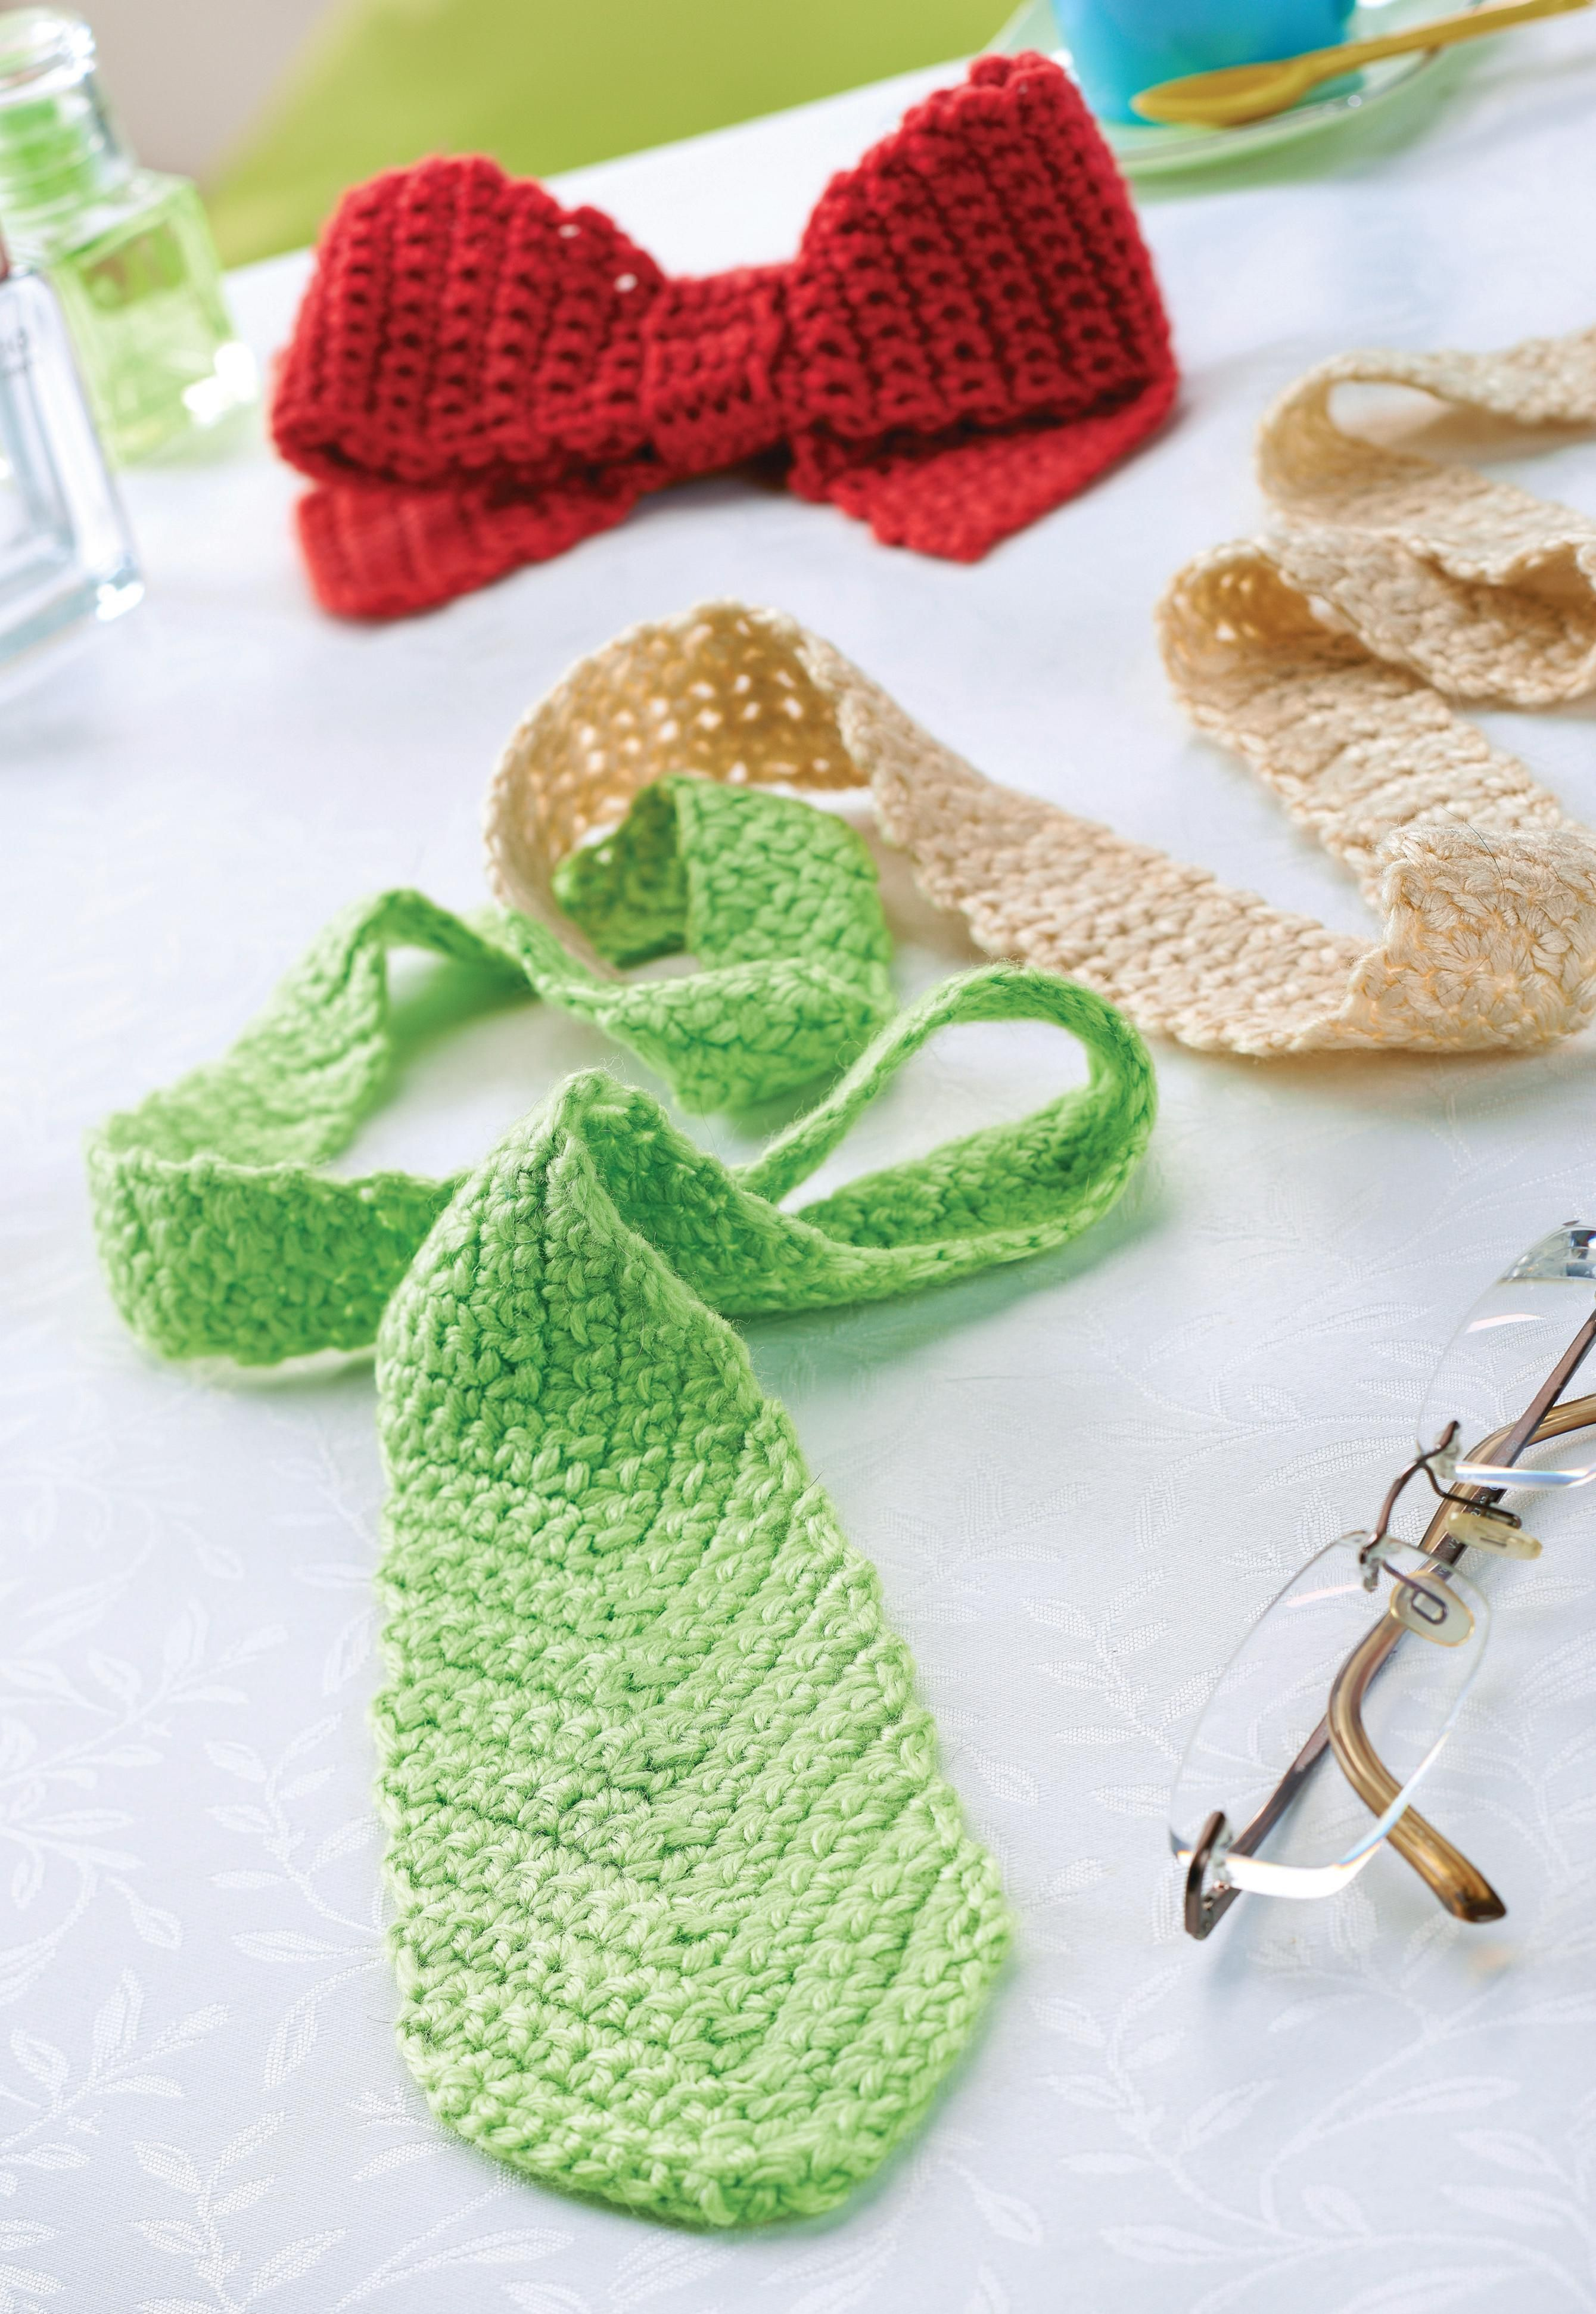 Crochet tie and bowtie Crochet Pattern | crochet | Pinterest ...